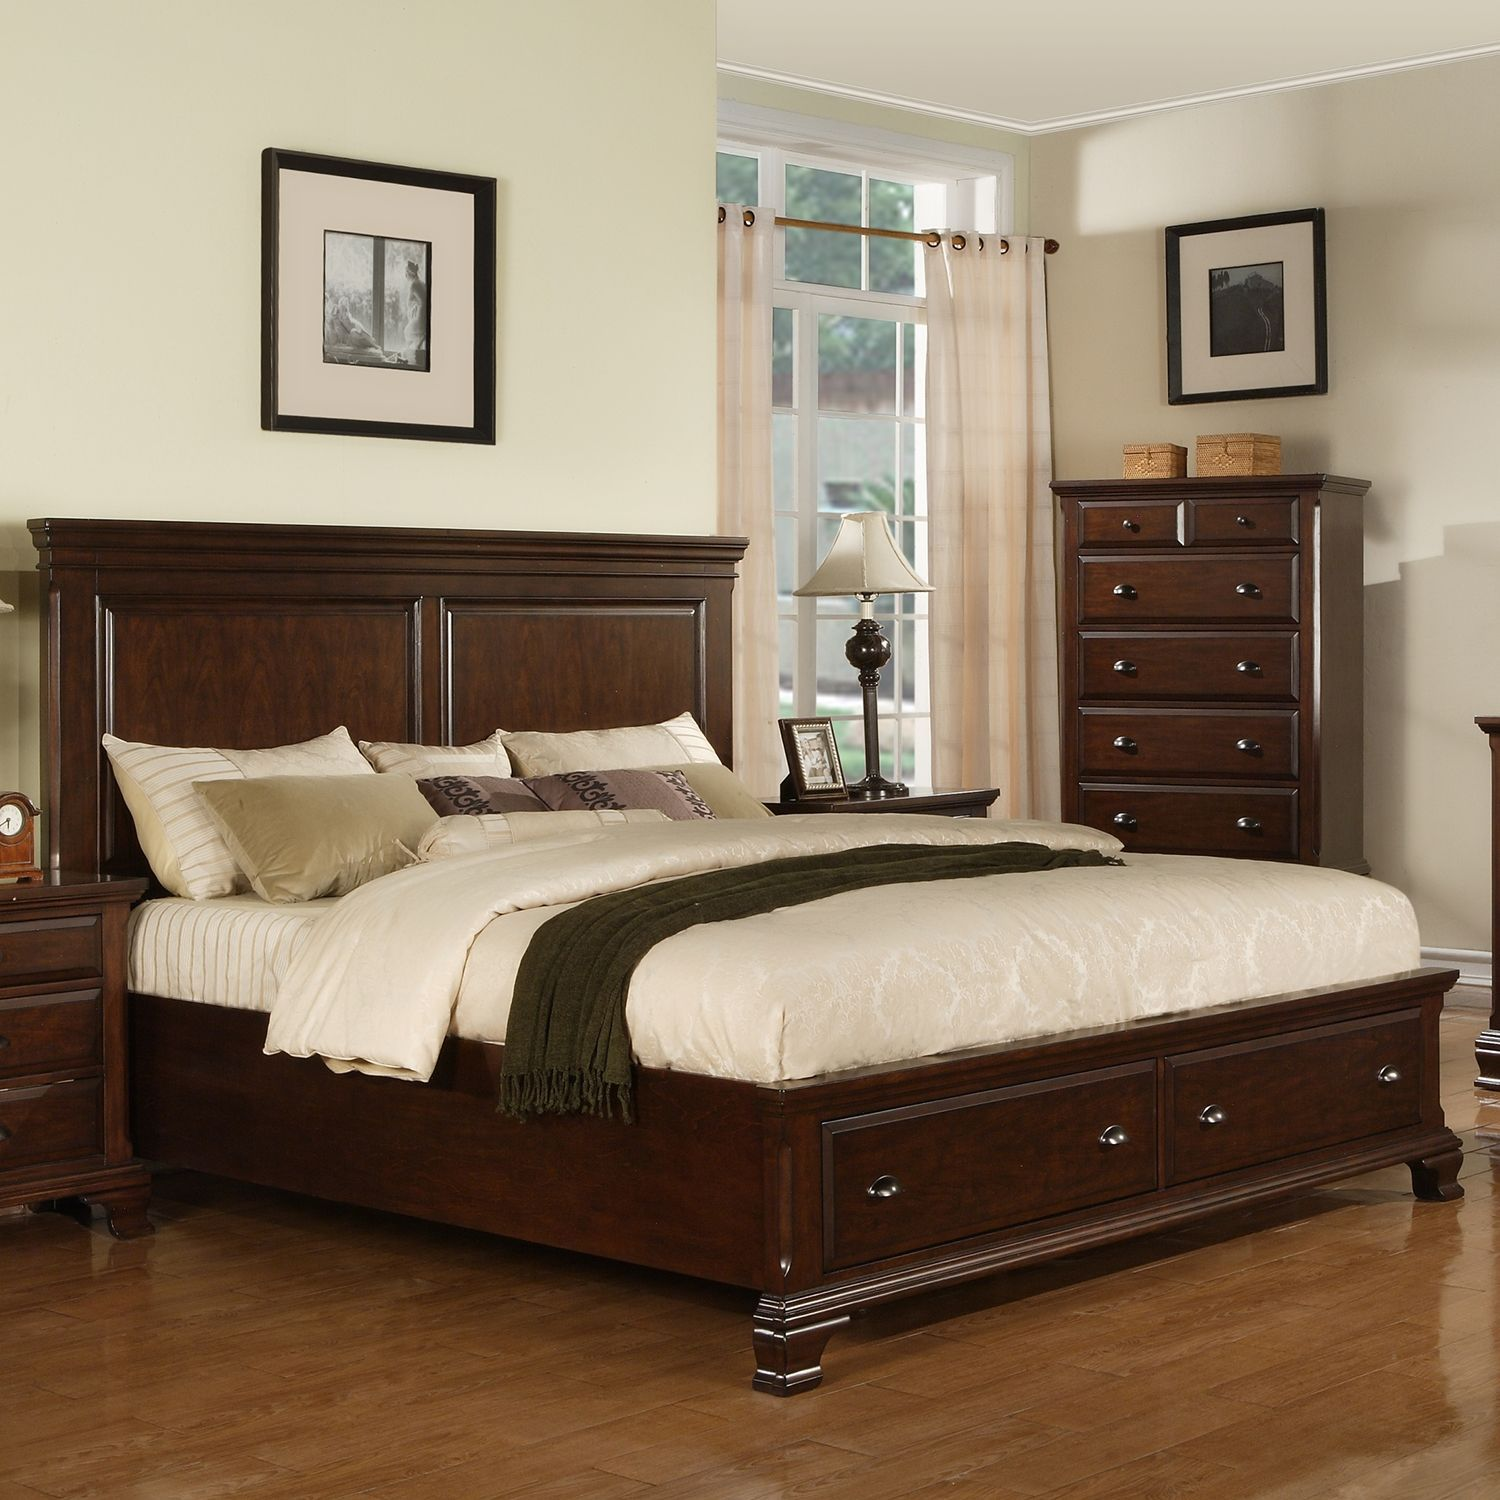 mahogany bedroom furniture brinley cherry storage bed choose size see best ideas 12203